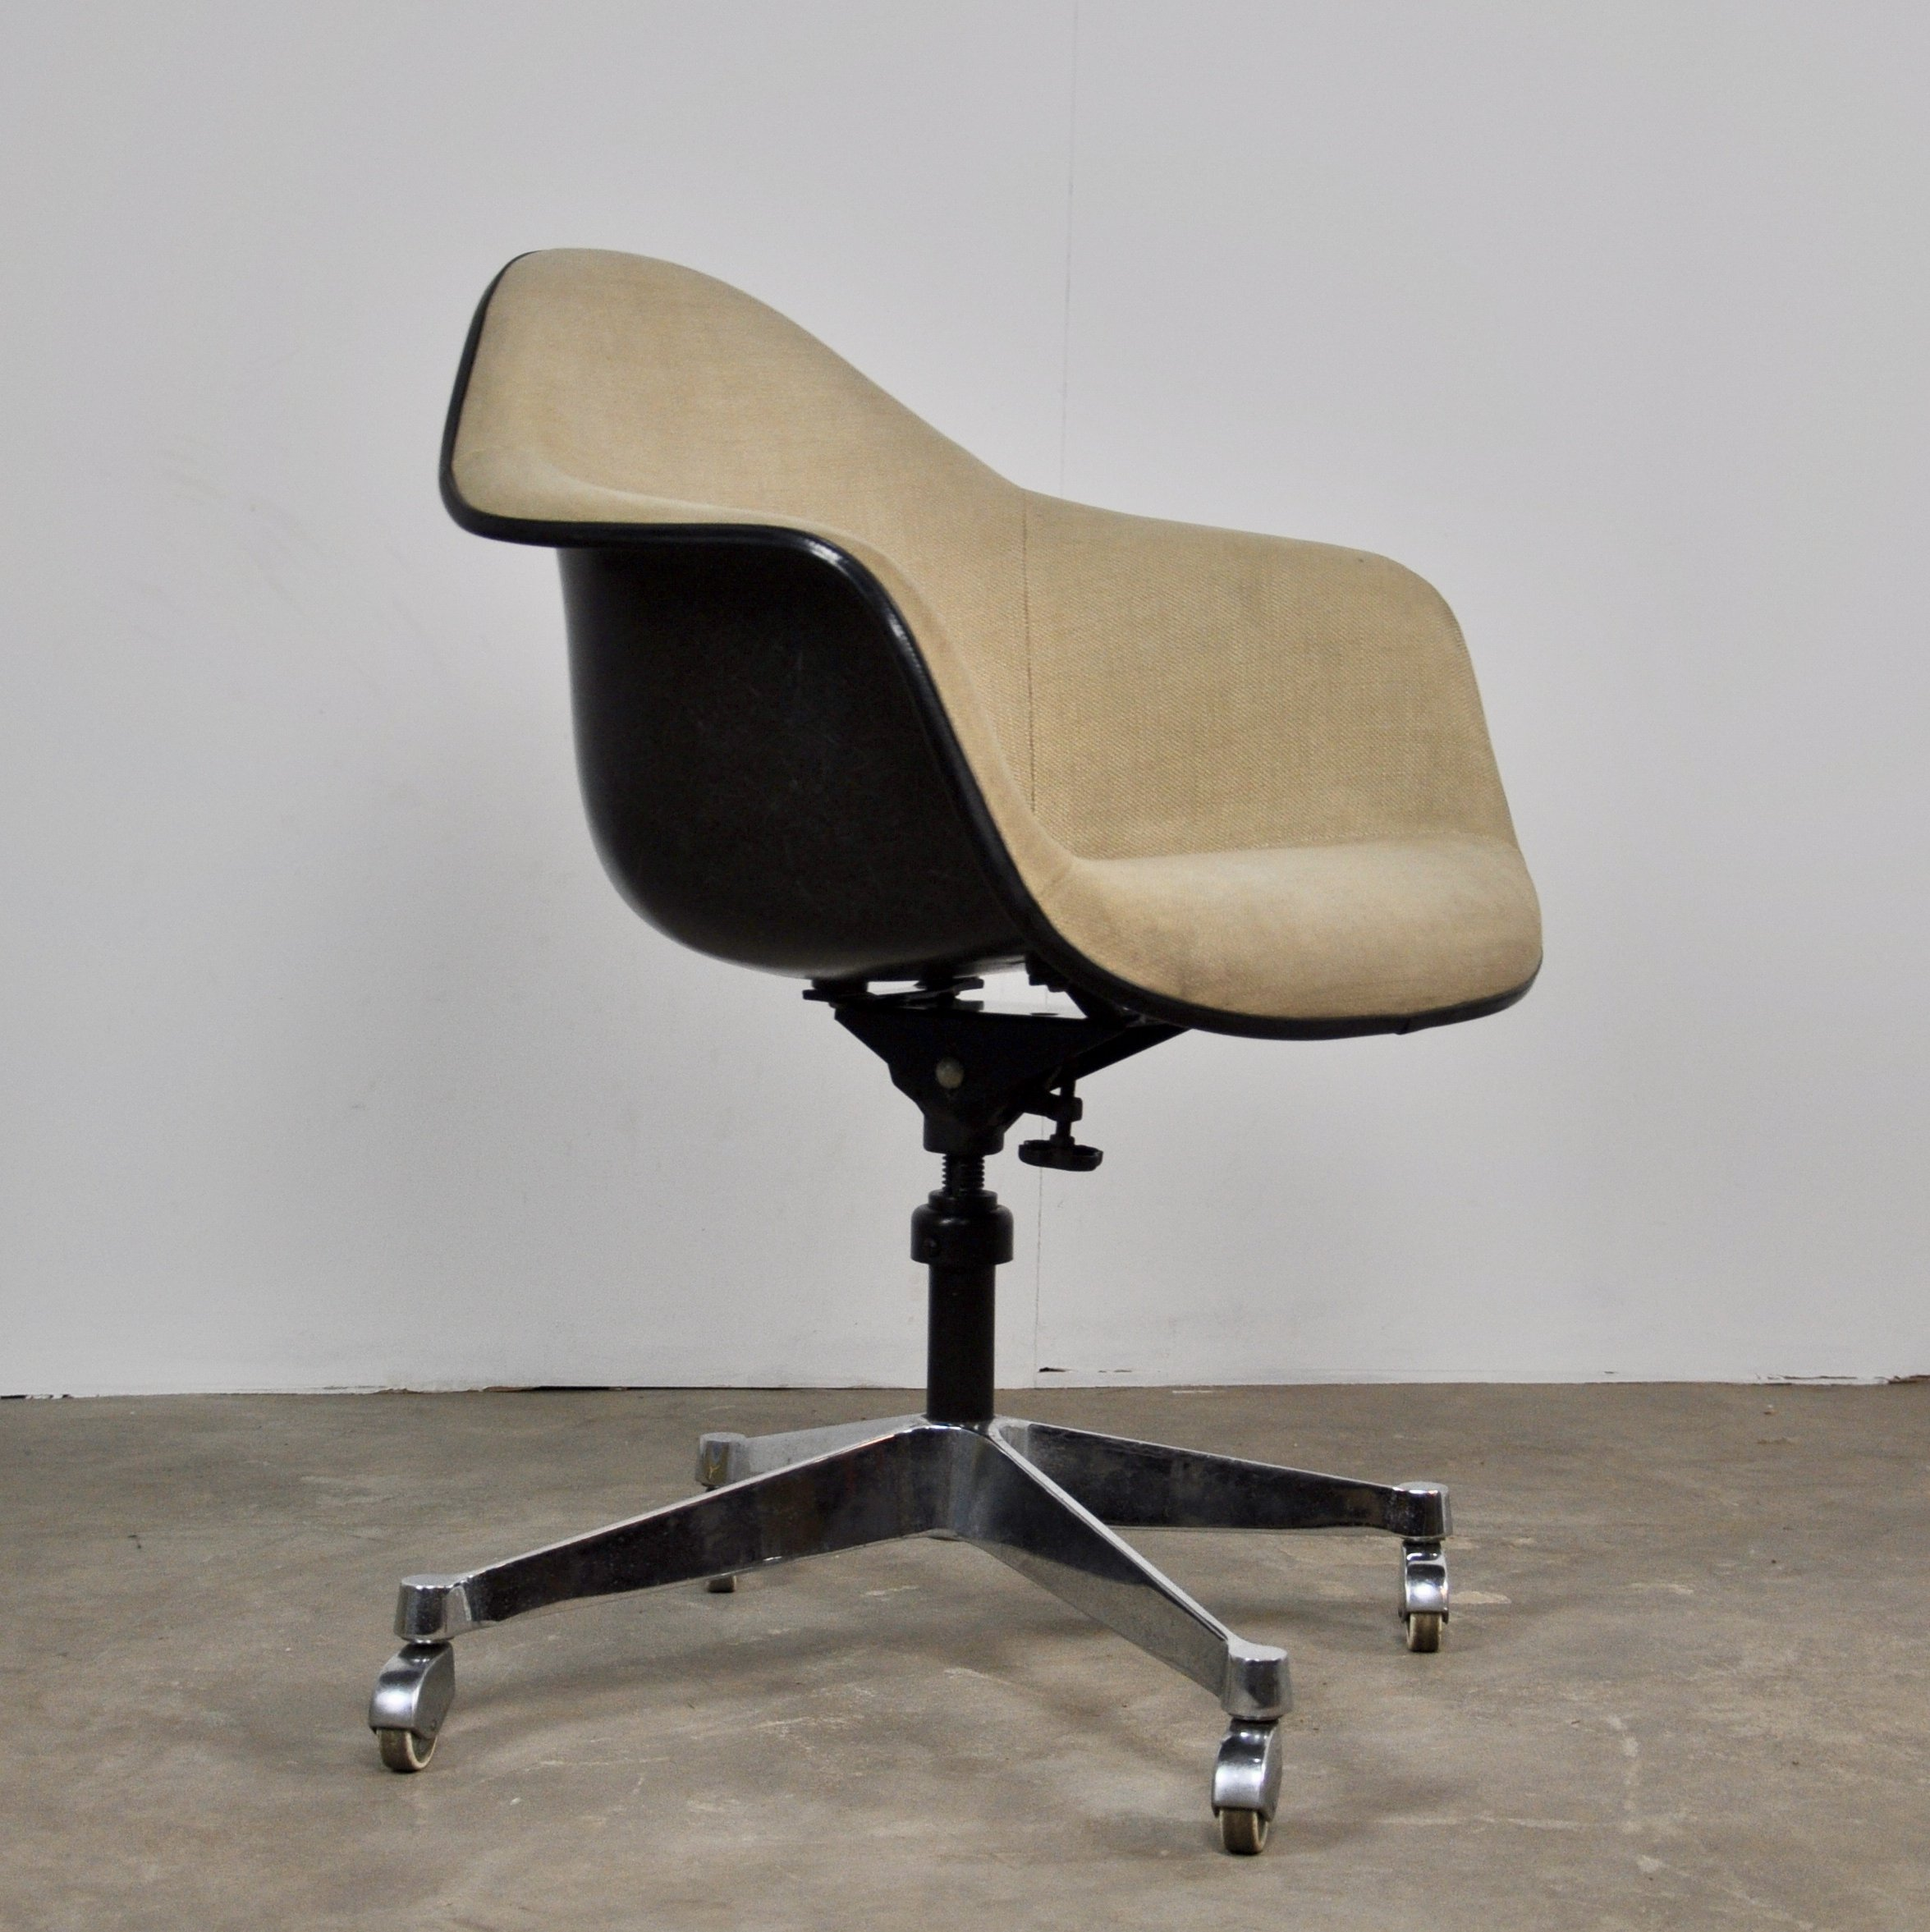 Charles Eames Office Chair By Charles Eames For Herman Miller 1970s